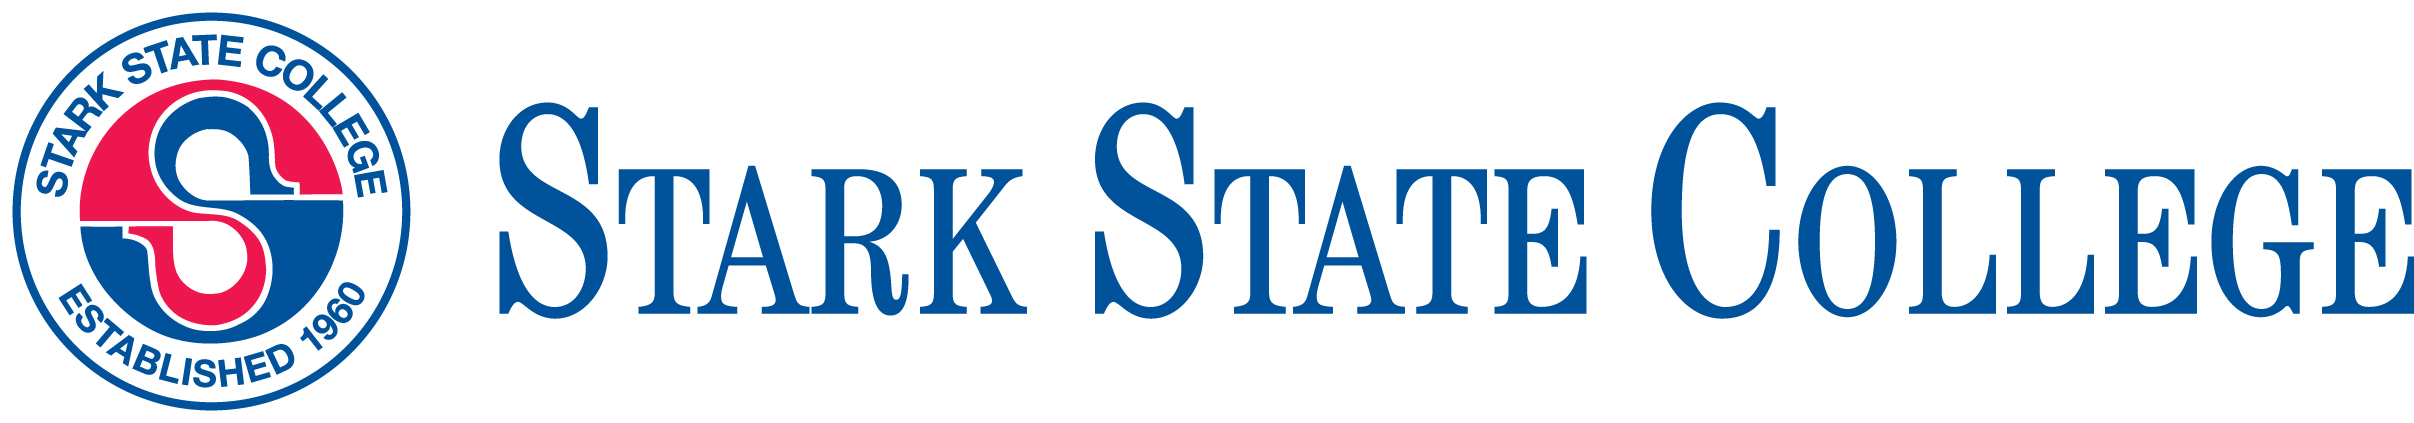 Image result for stark state college